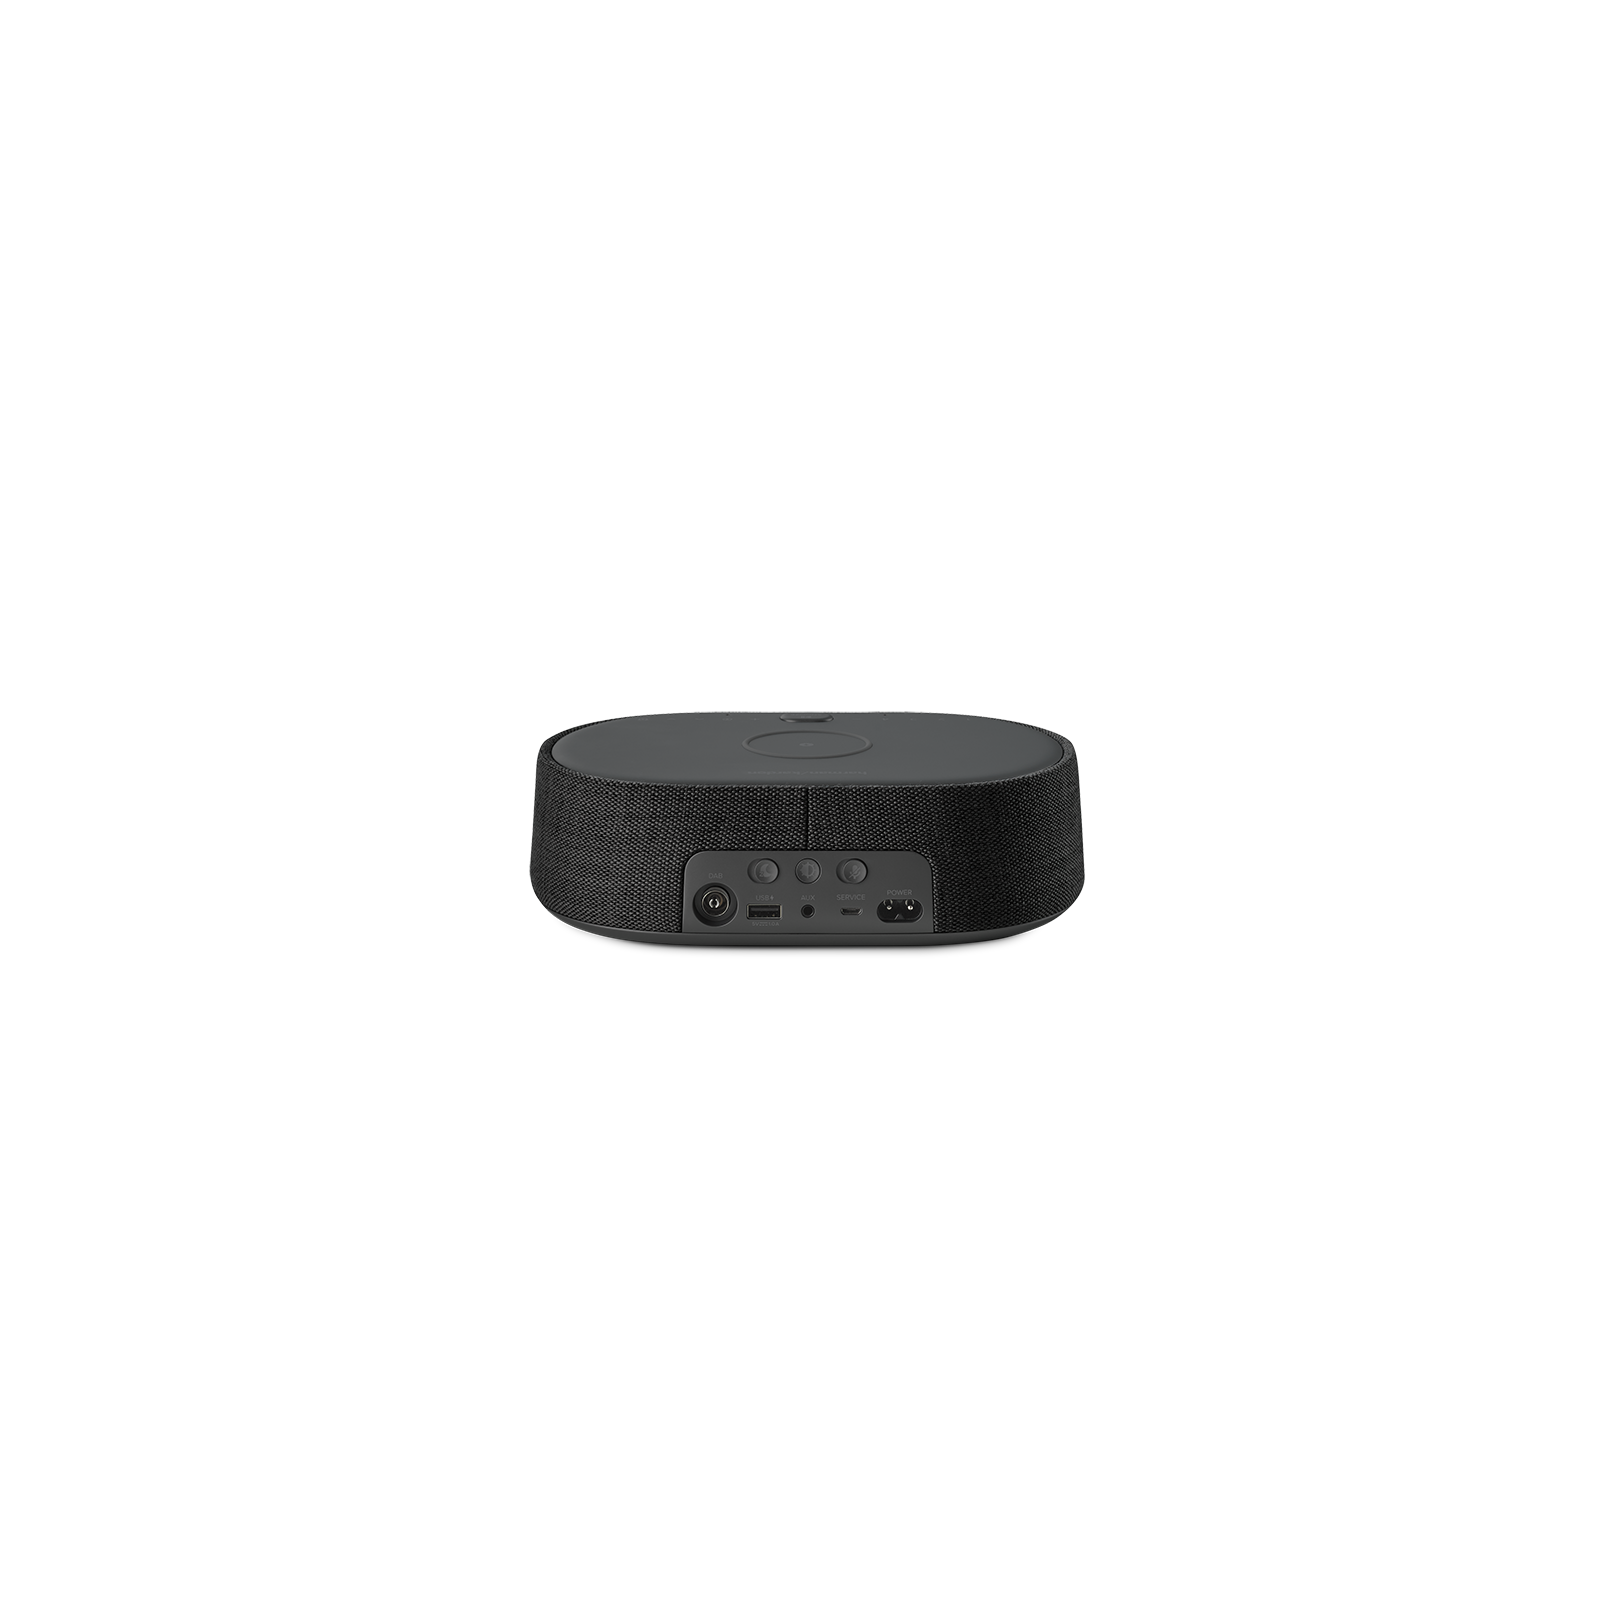 Harman Kardon Citation Oasis DAB - Black - Voice-controlled speaker with DAB/DAB+ radio and wireless phone charging - Back